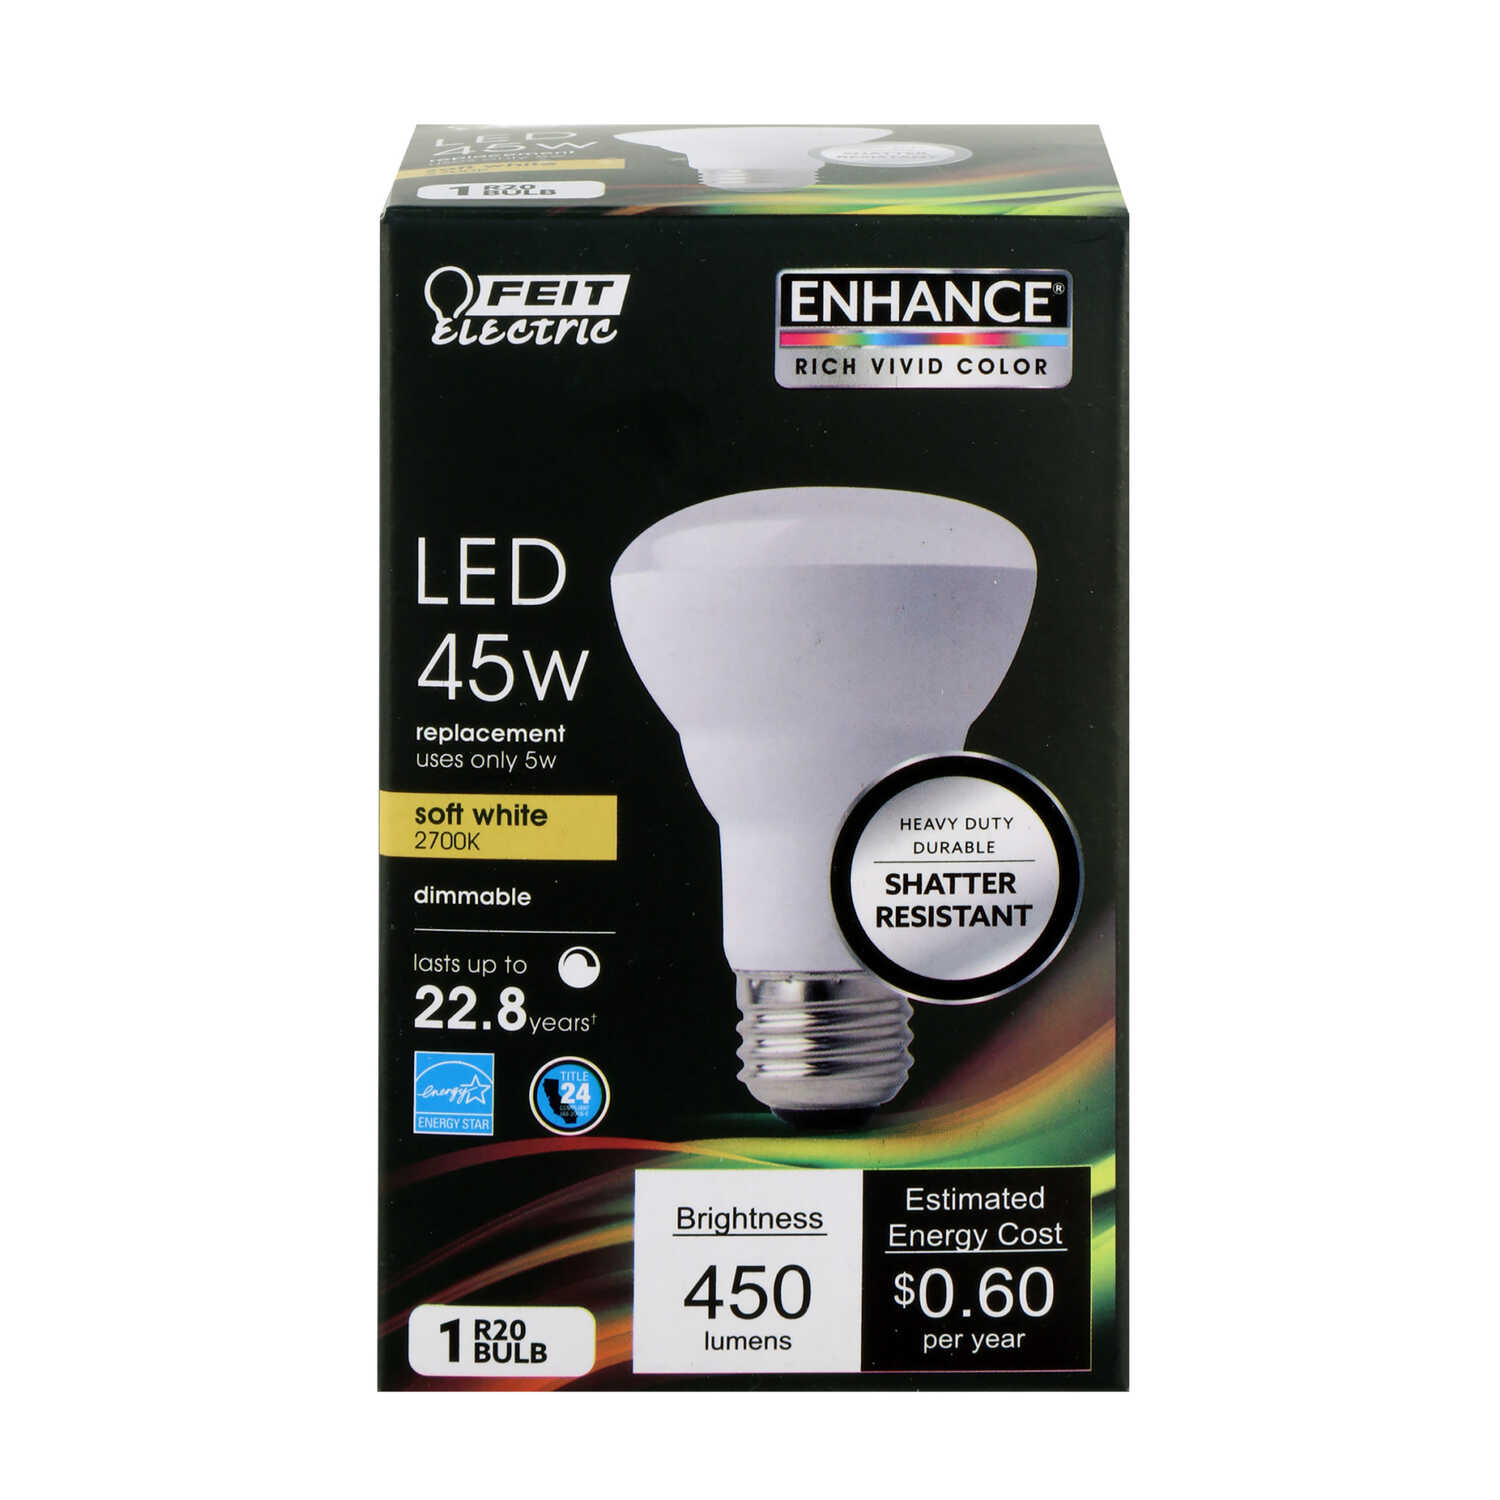 FEIT Electric  8 watts R20  LED Bulb  450 lumens Reflector  Soft White  45 Watt Equivalence